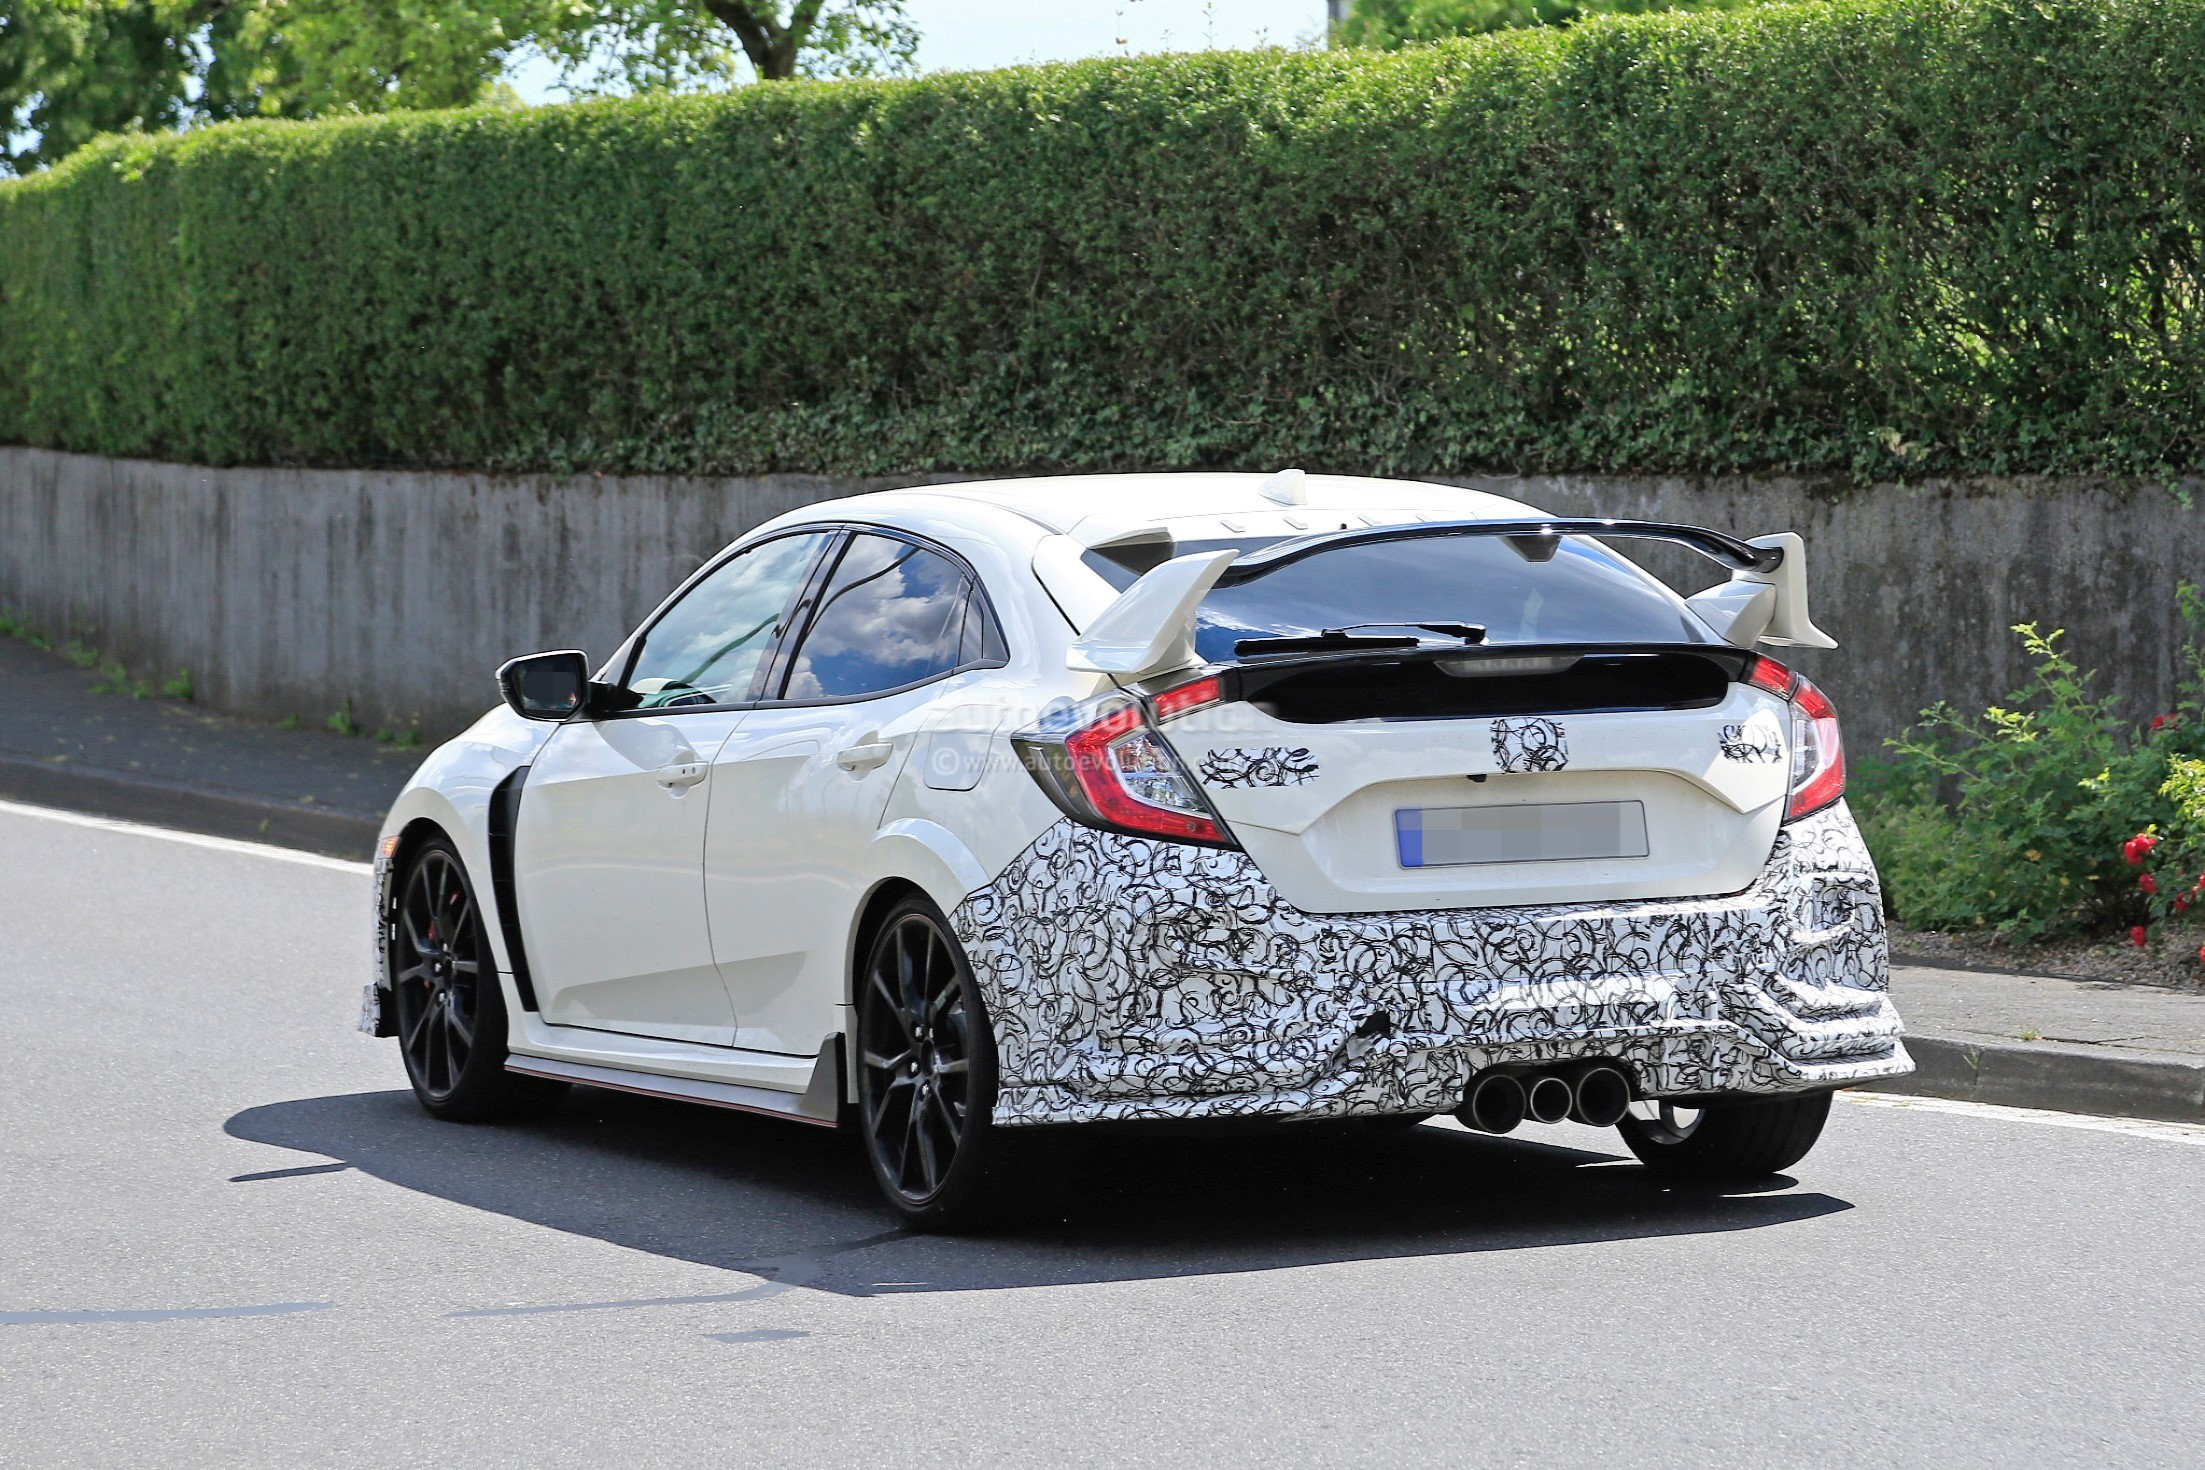 2019-honda-civic-type-r-spied-for-the-first-time_9.jpg